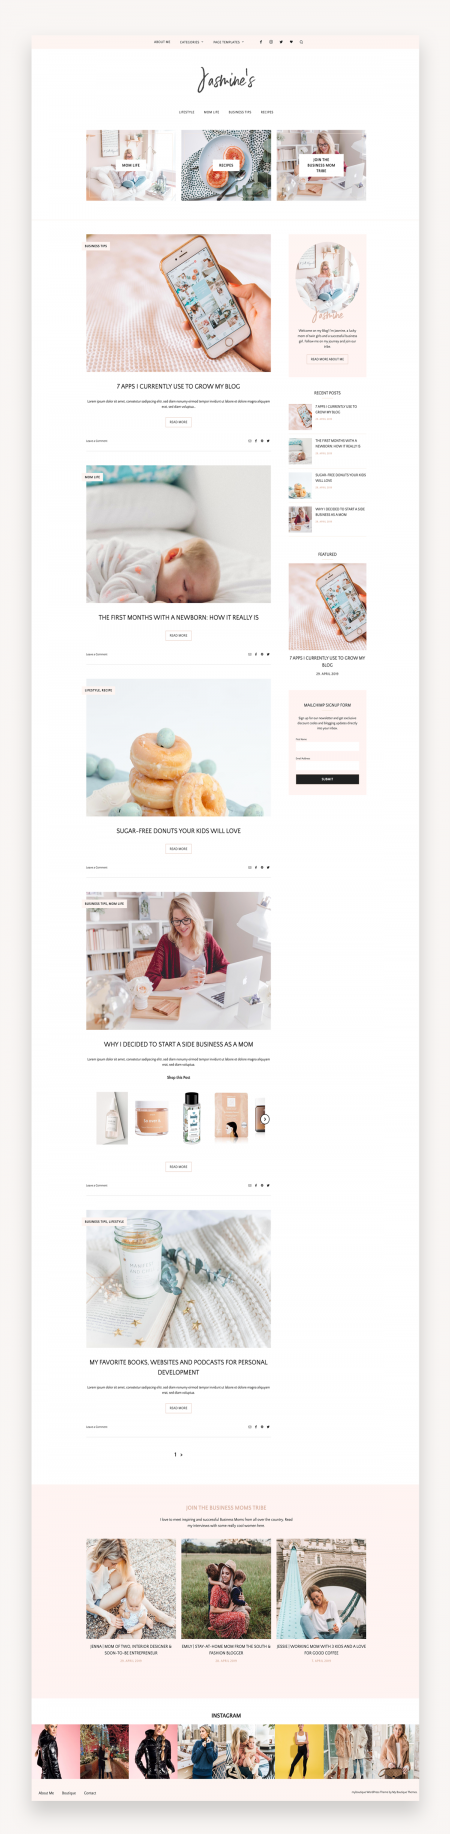 Feminine Blog and Shop Theme - Jasmine